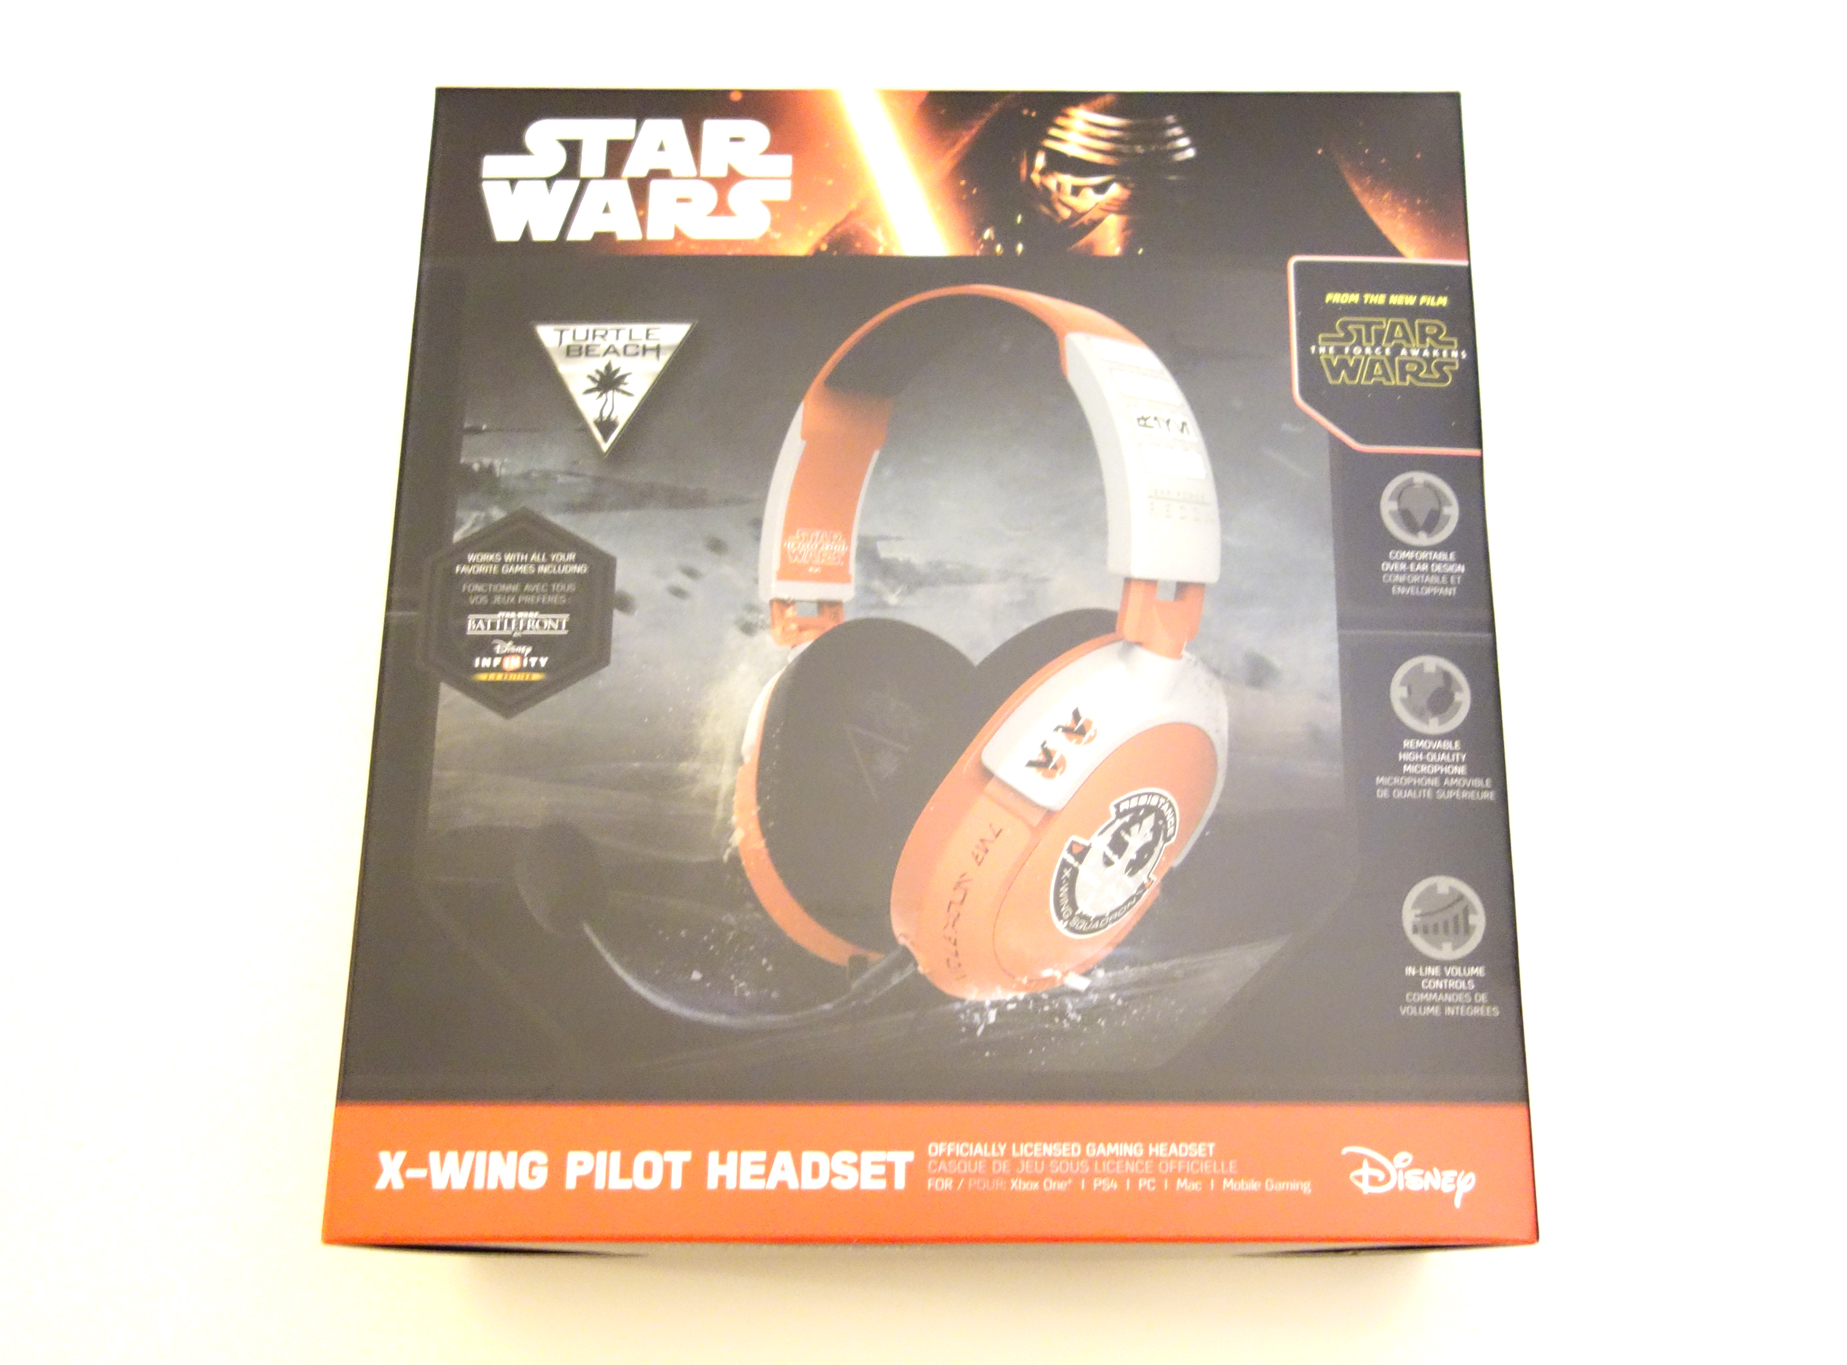 Turtle Beach Star Wars X-Wing Pilot Gaming Headset review box front